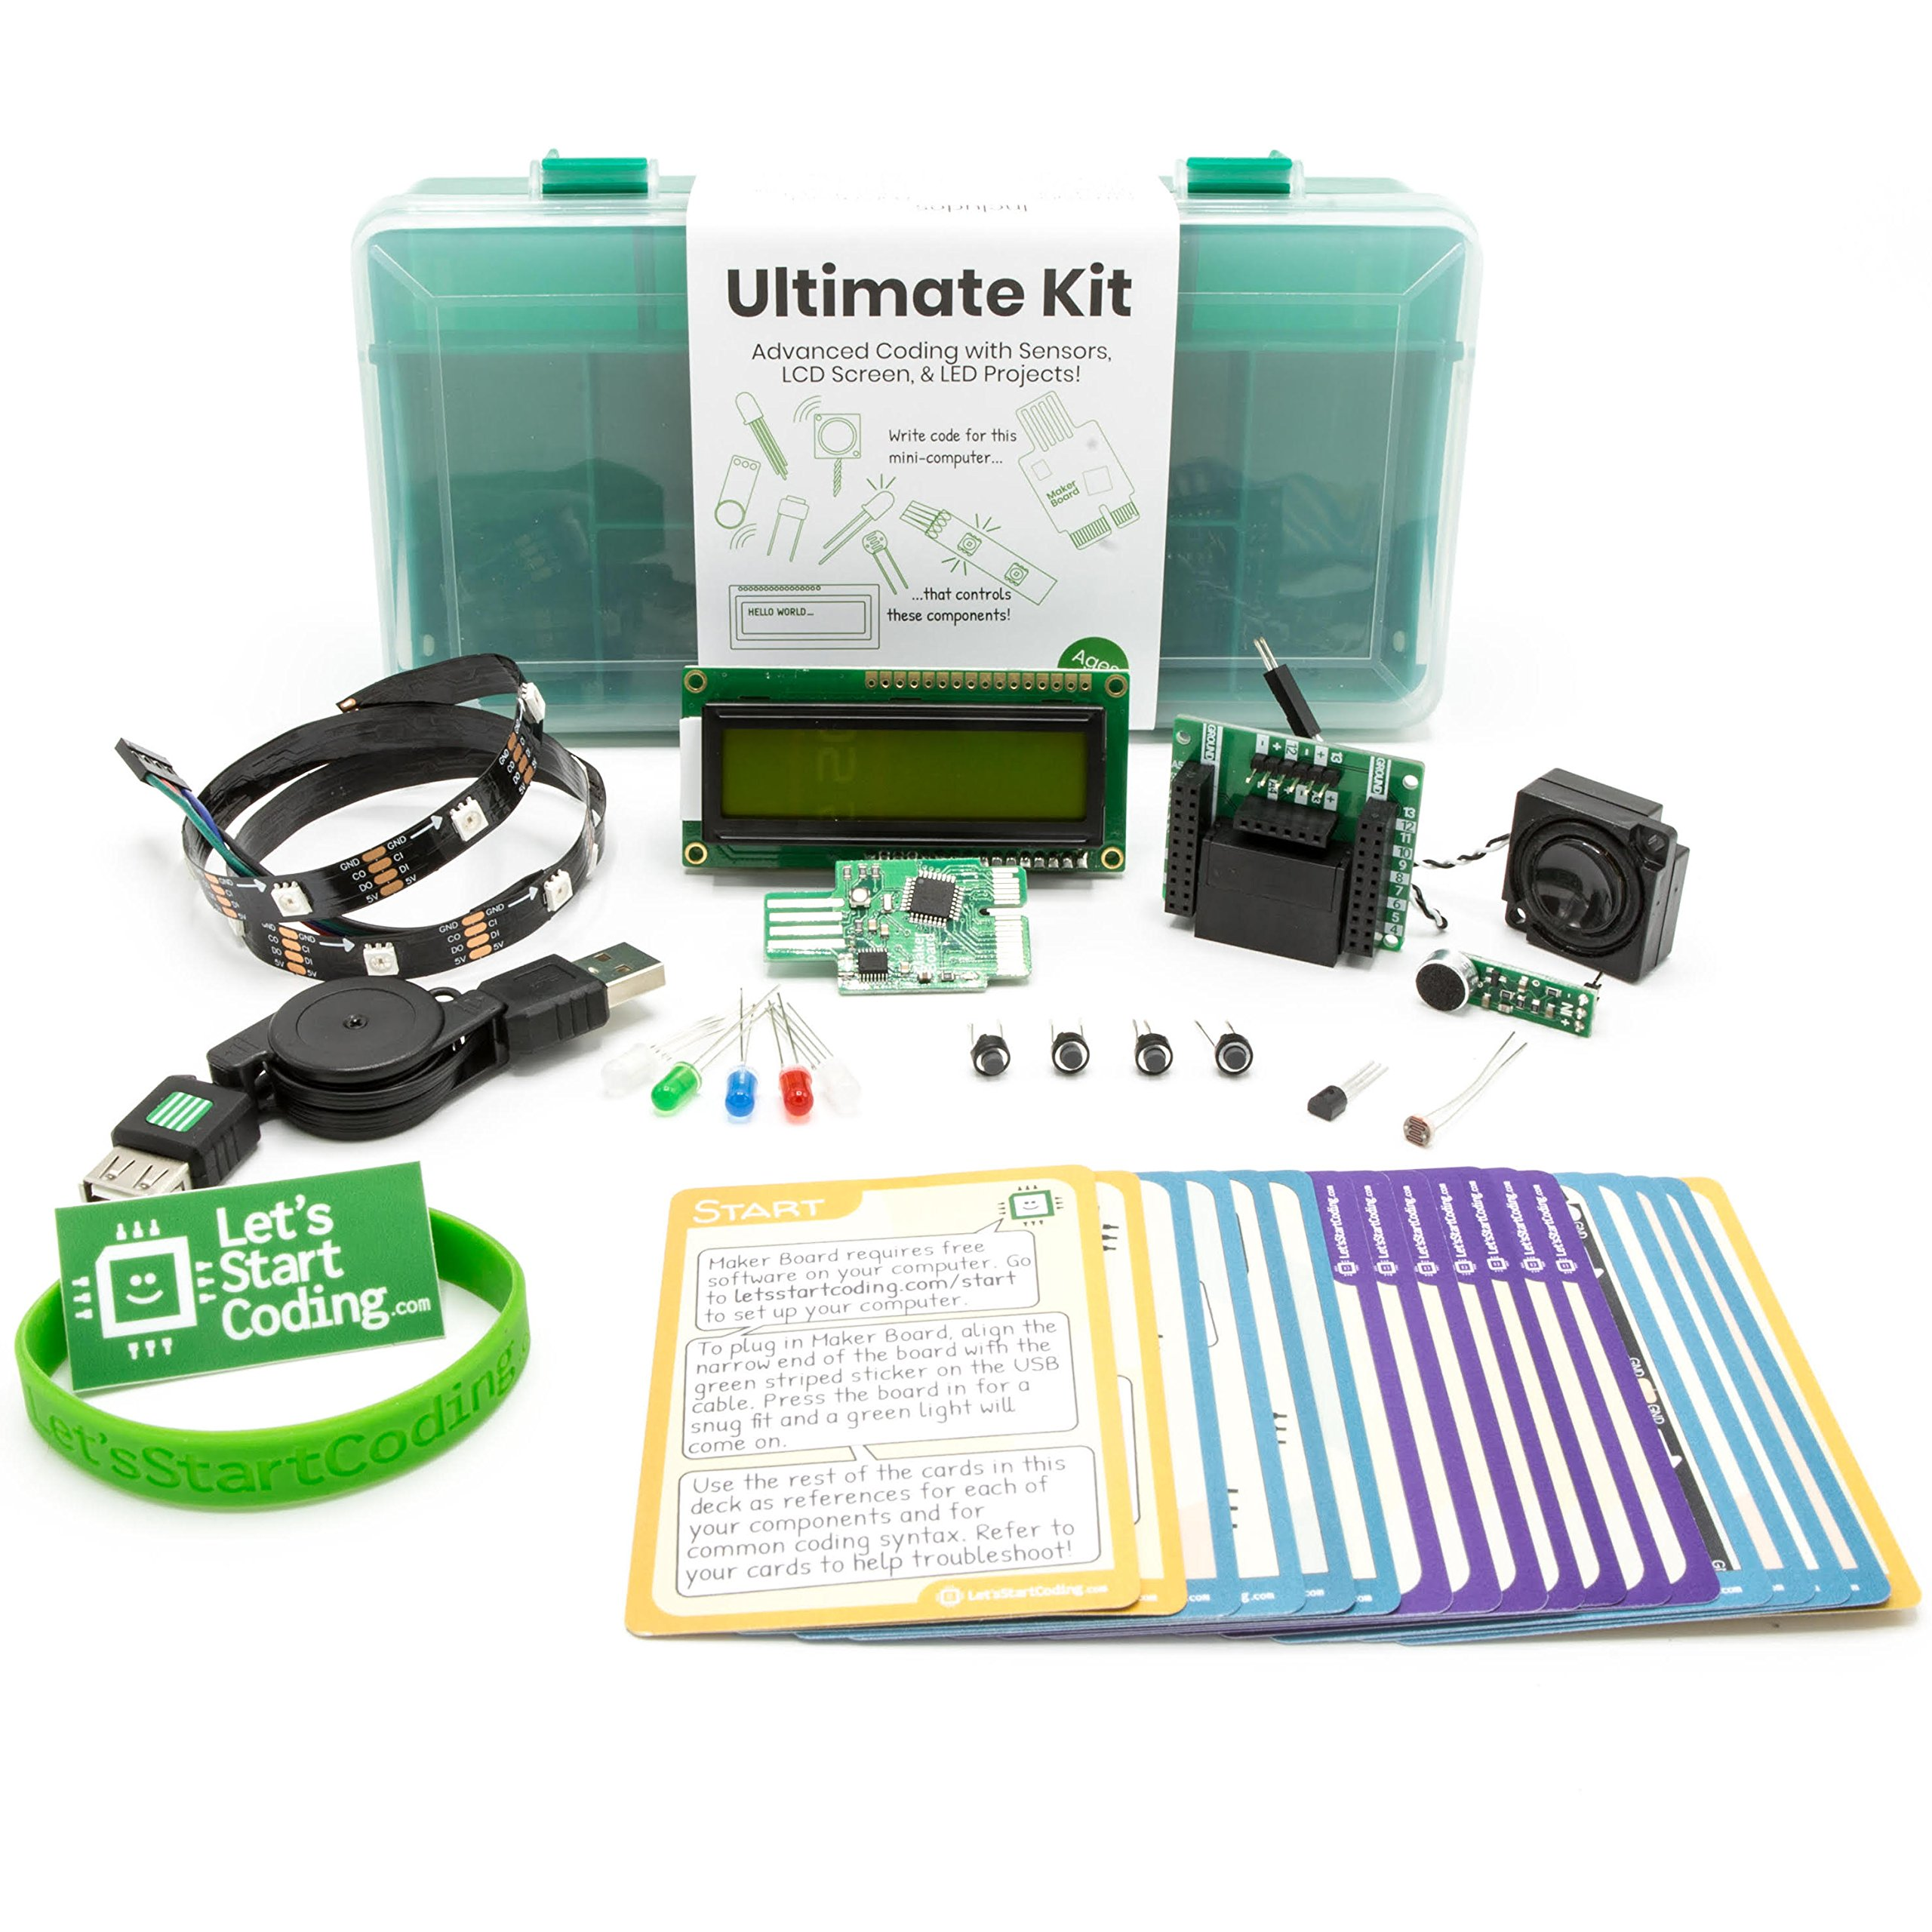 Ultimate Kit 2.0 from Let's Start Coding : Best Advanced Coding and Circuit Kit for Kids Aged 12-15